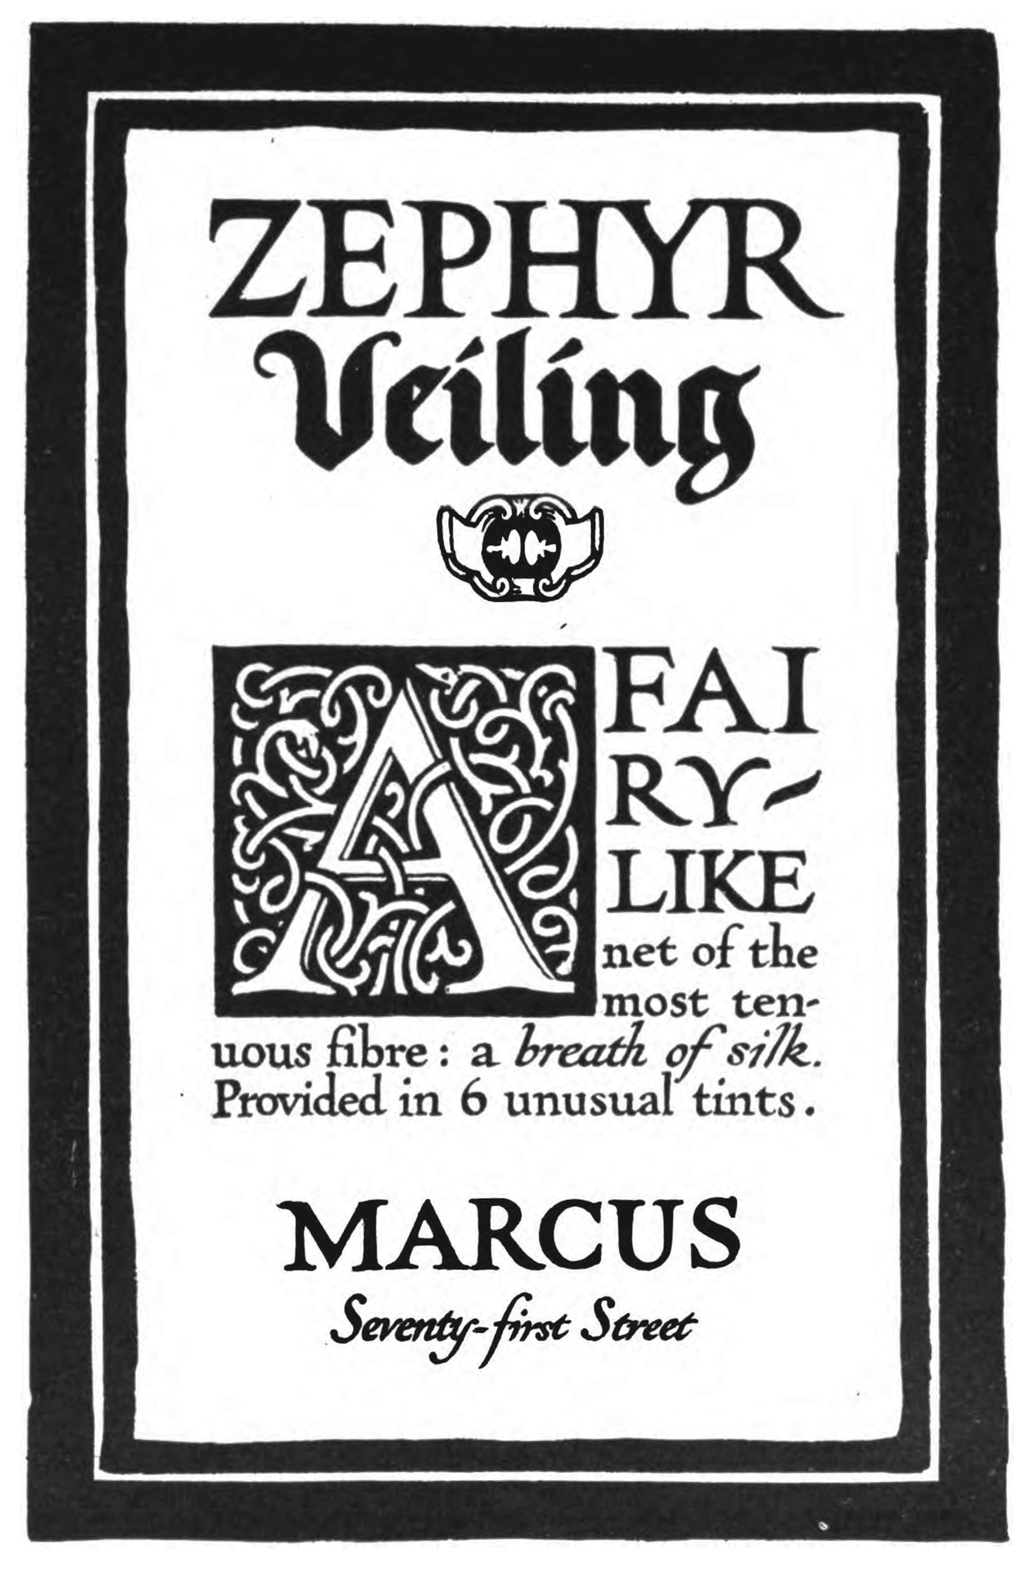 "Zephyr Veiling advertisement attributed to Frederic W. Goudy in ""Drawings that Sell Goods"" by Hermann Püterschein in The Printing Art vol. XXVIII, no. 1 (September 1916). Designed by W.A. Dwiggins."